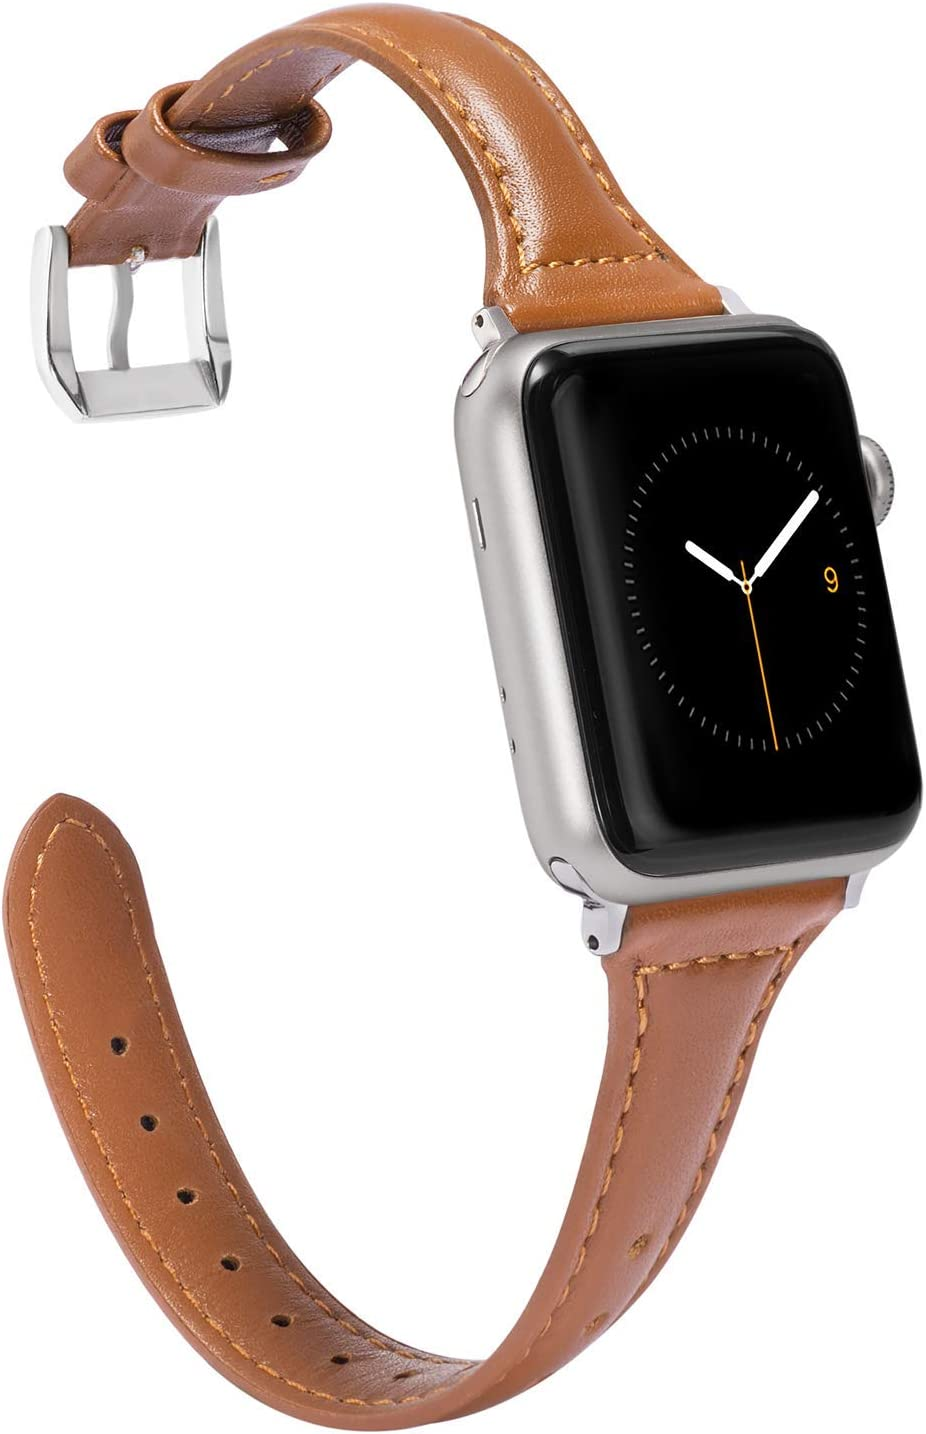 Wearlizer Brown Slim Leather Compatible with Apple Watch Band 38mm 40mm for iWatch Womens Mens Top Grain Leather Thin Strap Simple Cute Stylish Wristband (Silver Clasp) Series 5 4 3 2 1 Edition Sport